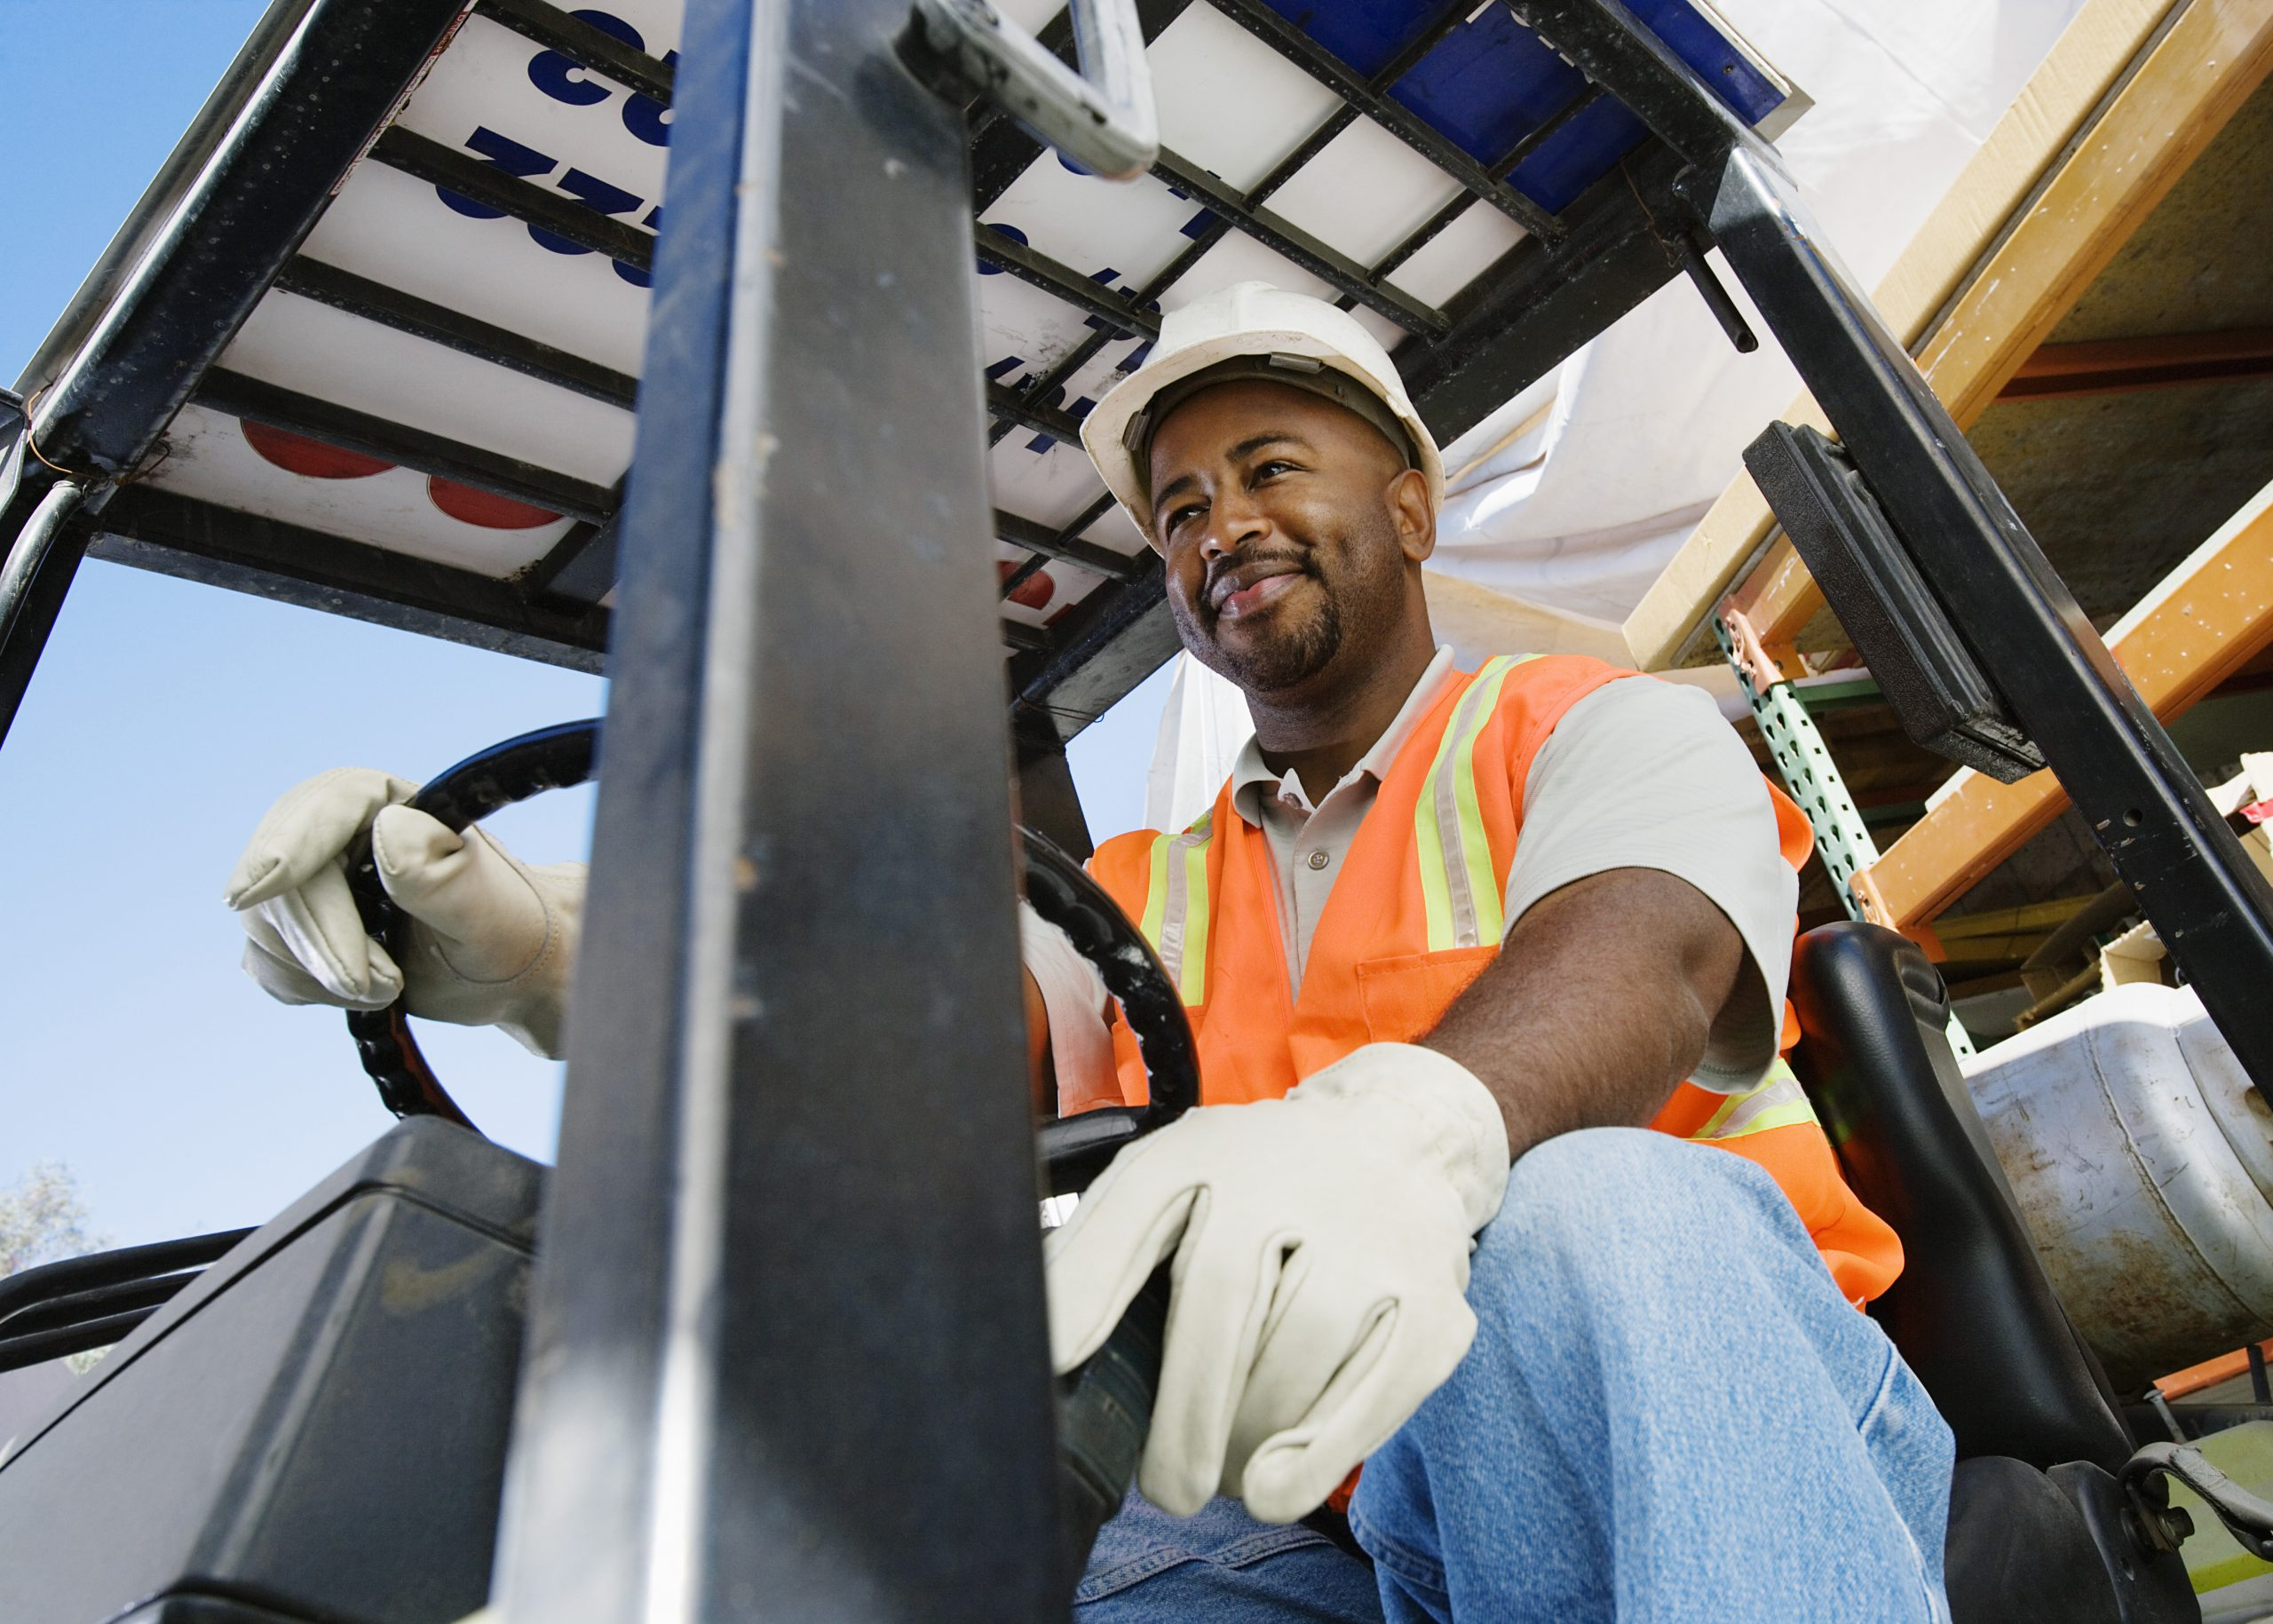 Image of a man operating a forklift. Links to the Bank of Versailles Commercial Loans page.